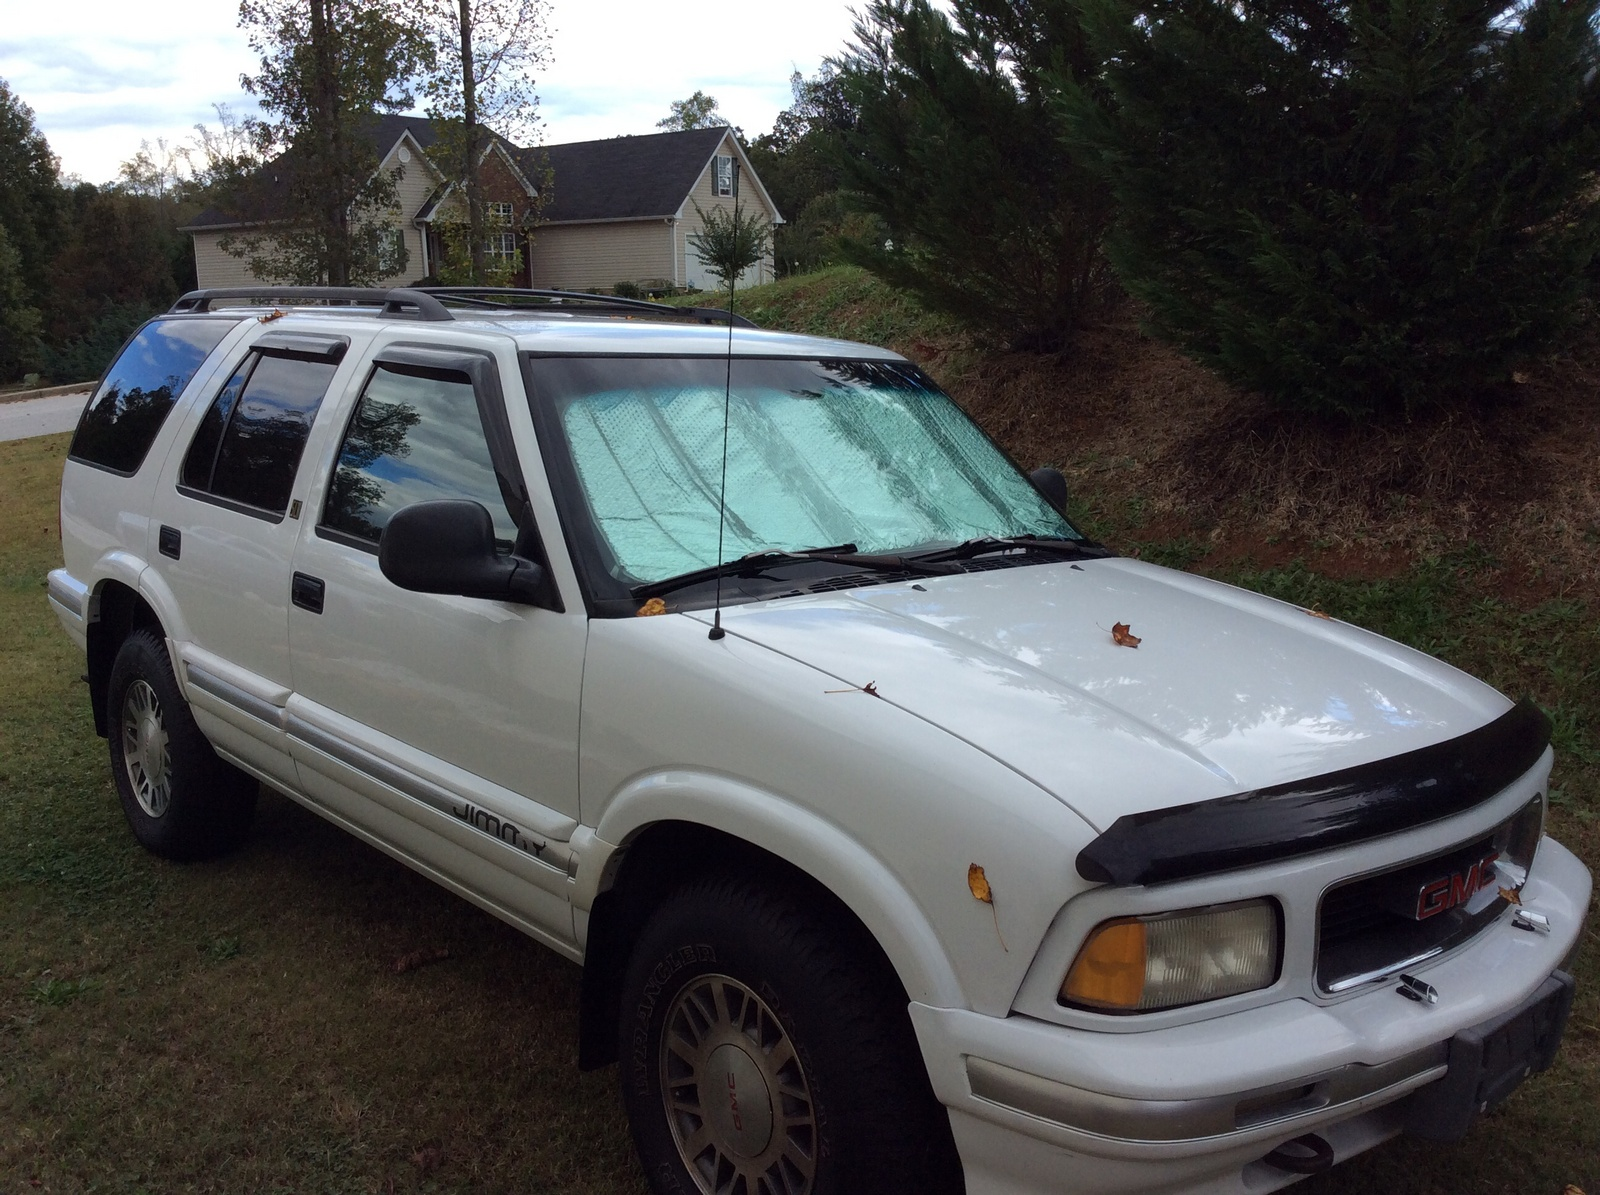 Picture of 1997 GMC Jimmy 4 Dr SLT 4WD SUV, exterior